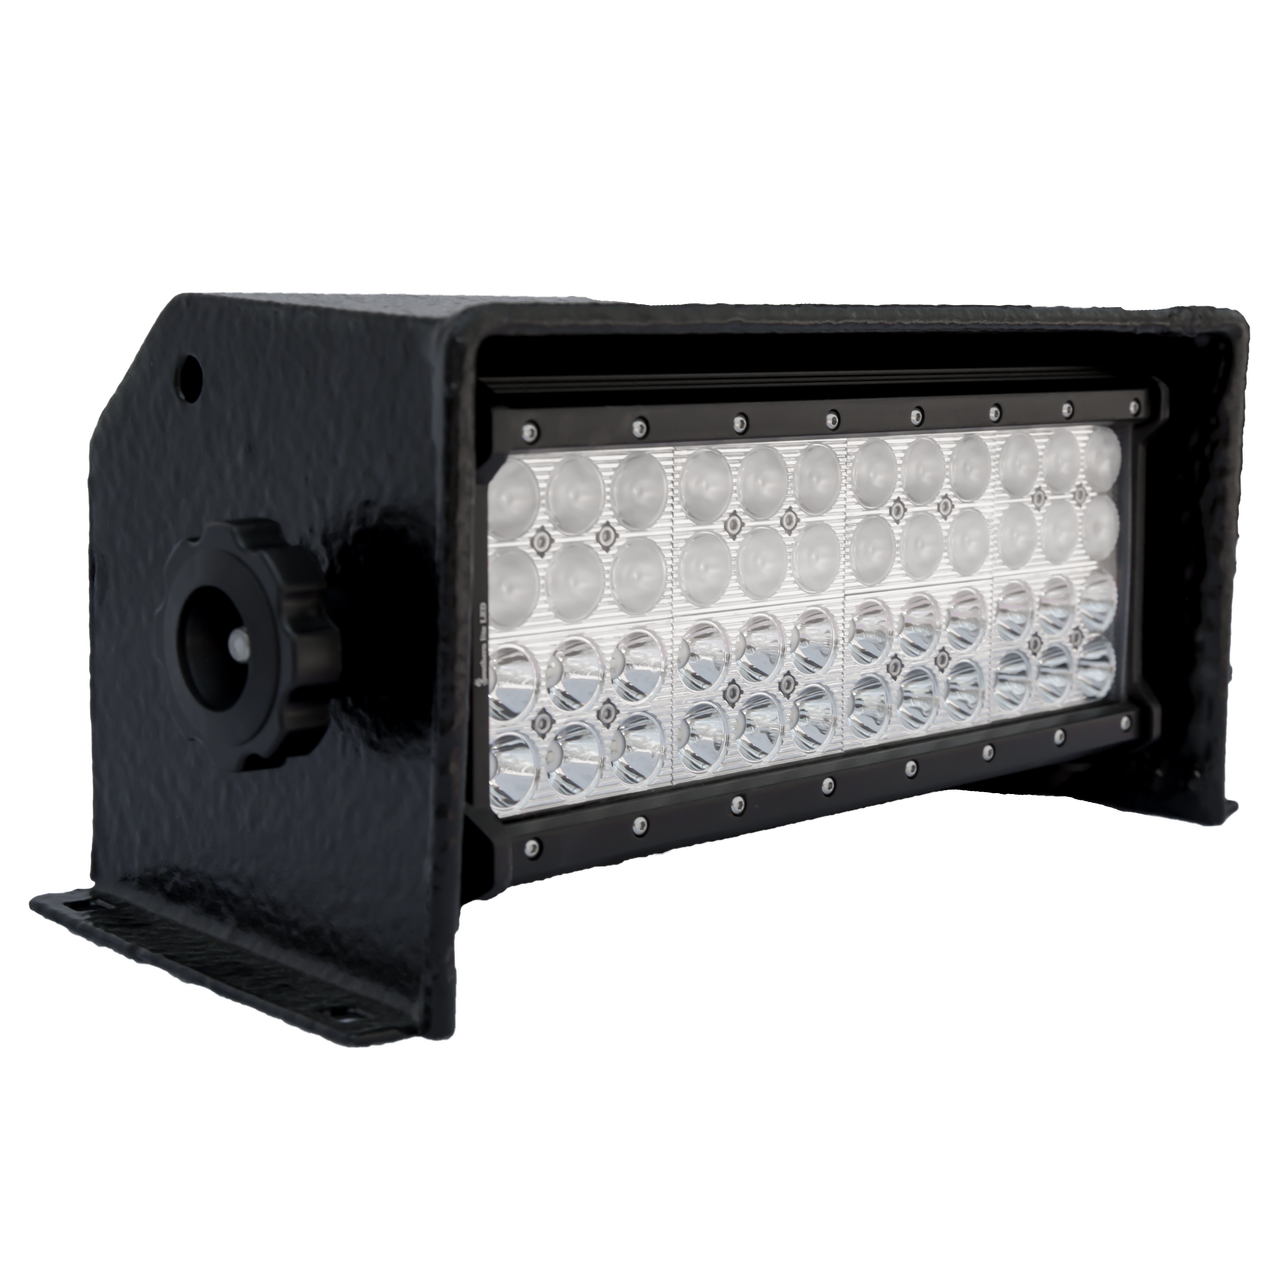 GEN1.2 Boat Lite  (no Add-ons) Includes Standard black housing (shown), Quad Row LED, and mounting hardware.